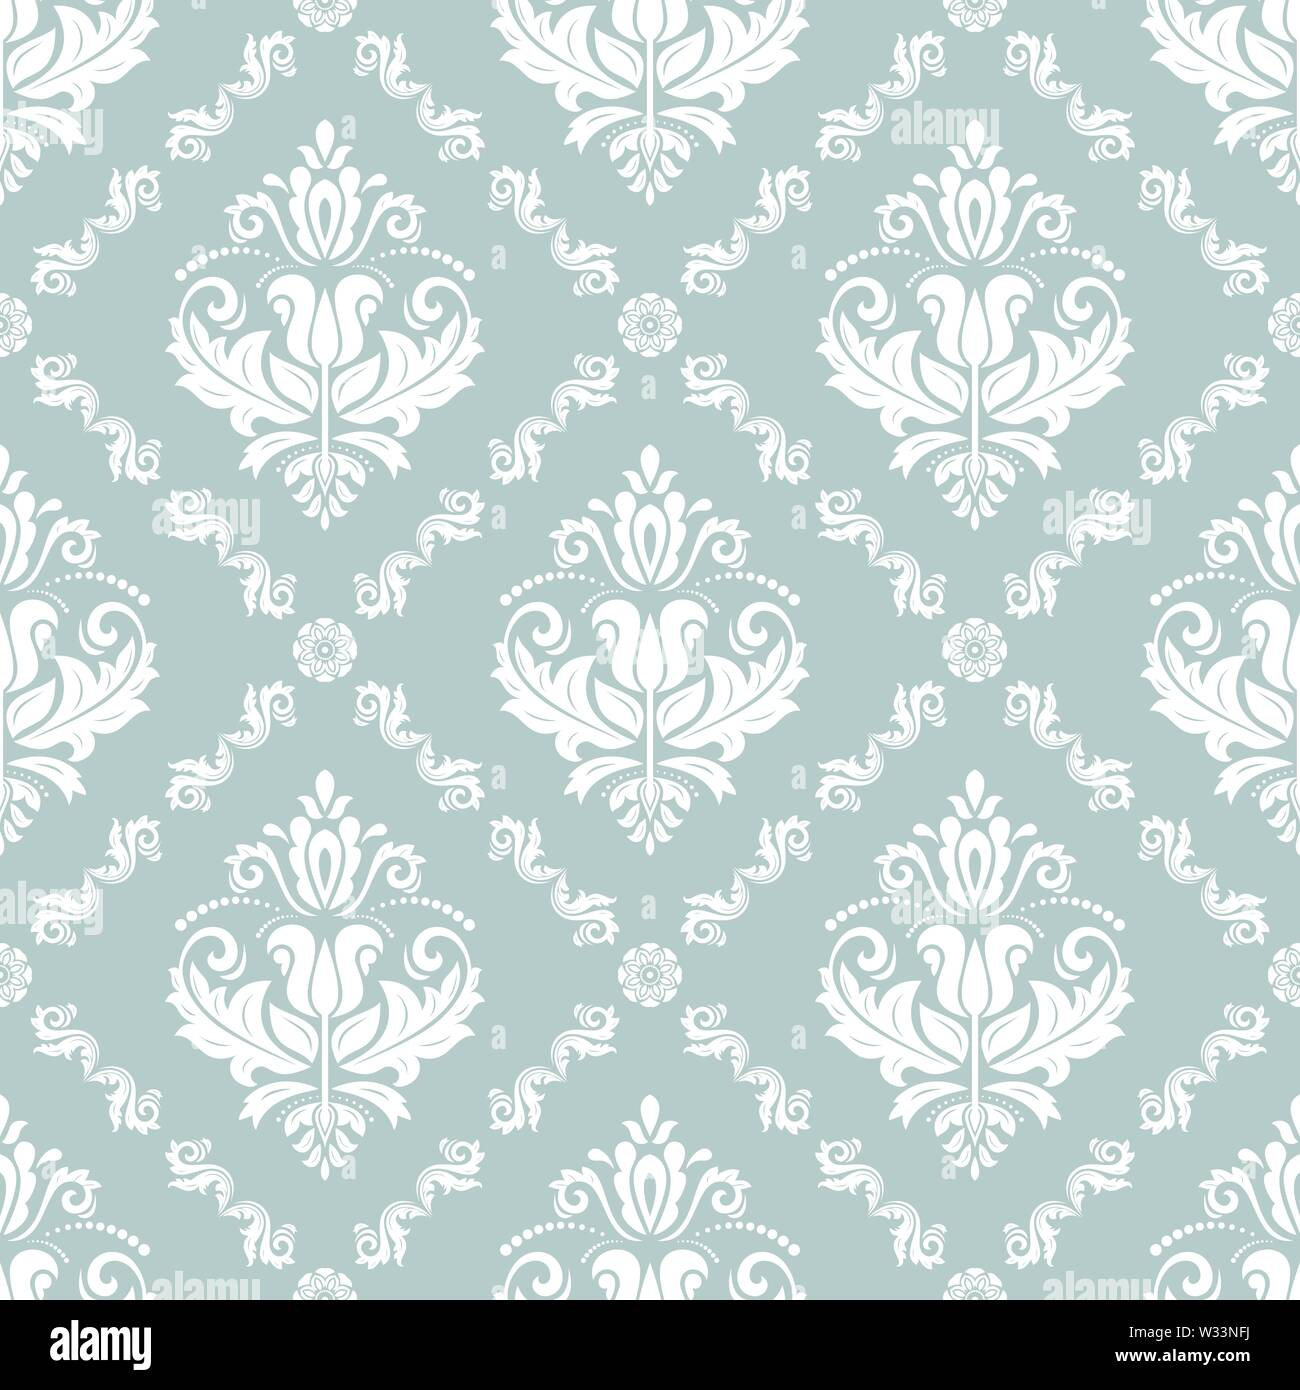 Classic Seamless Vector Pattern - Stock Image